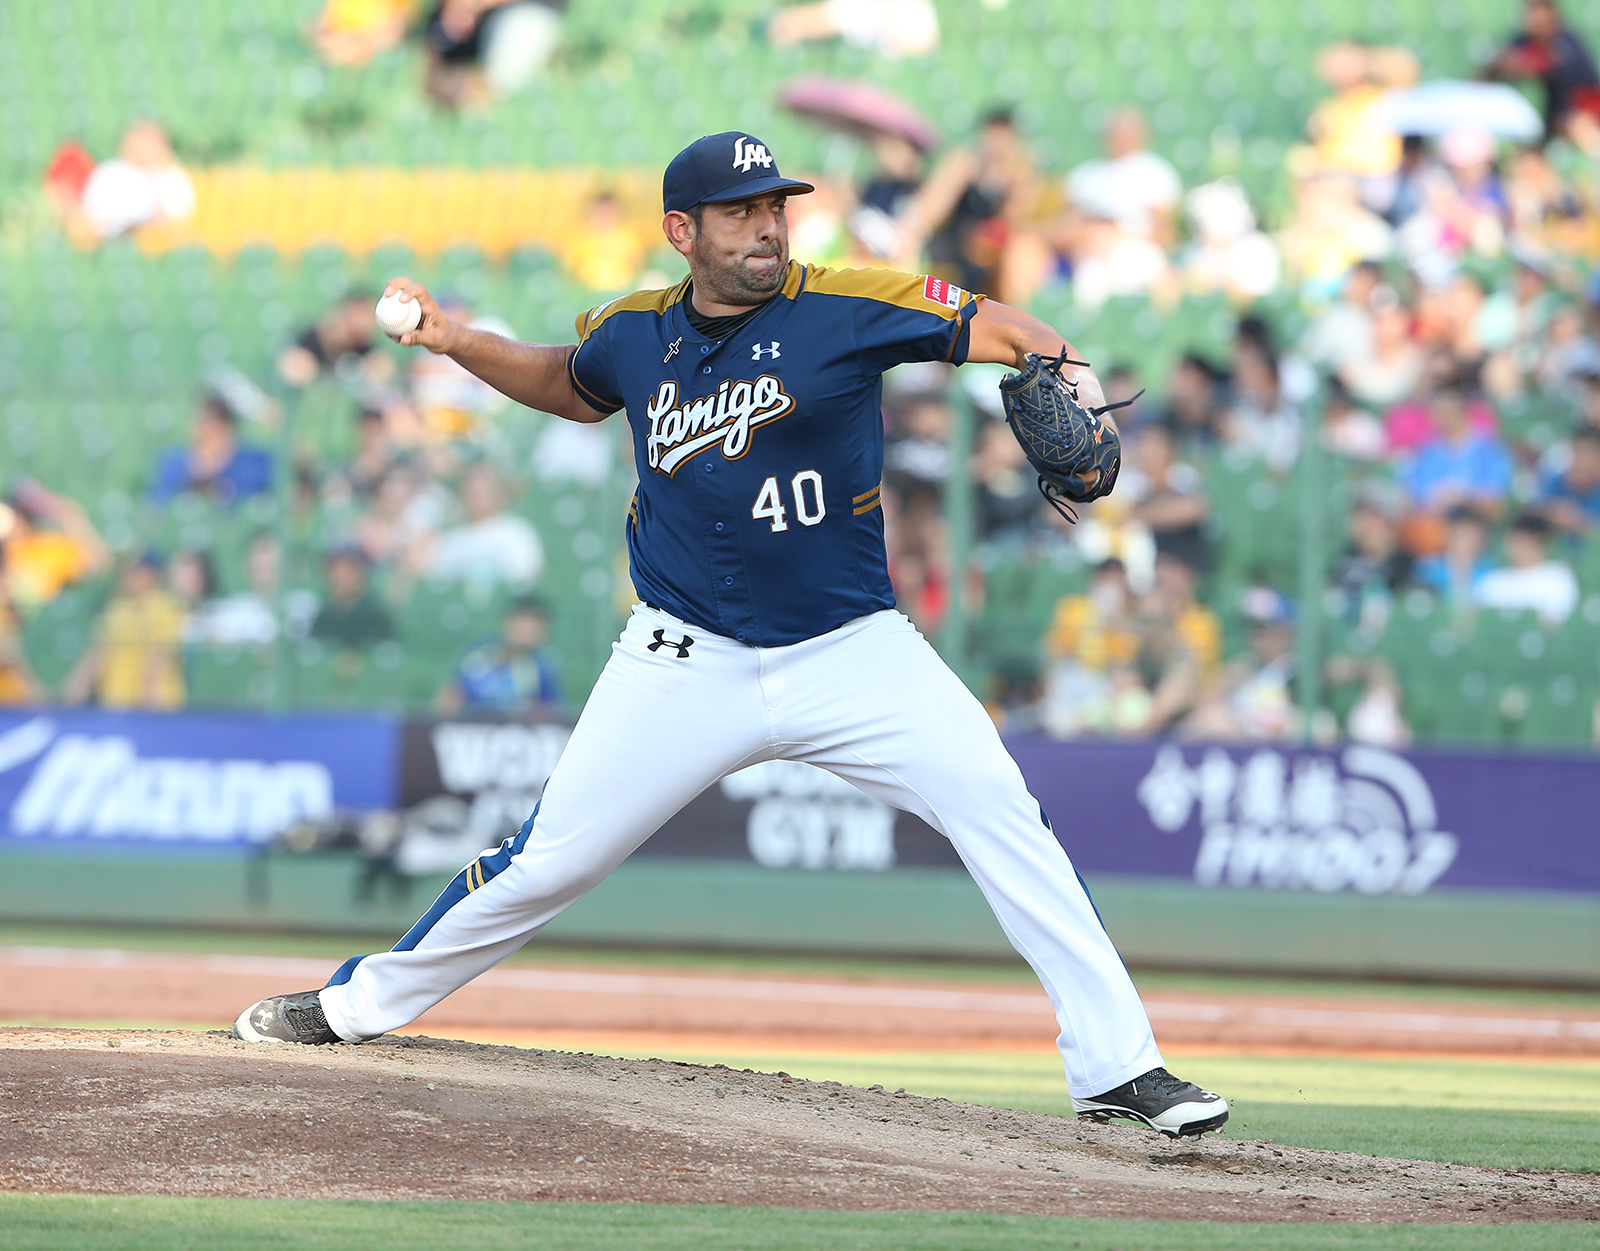 Chinatrust Brothers sign Zack Segovia for 2018 CPBL season